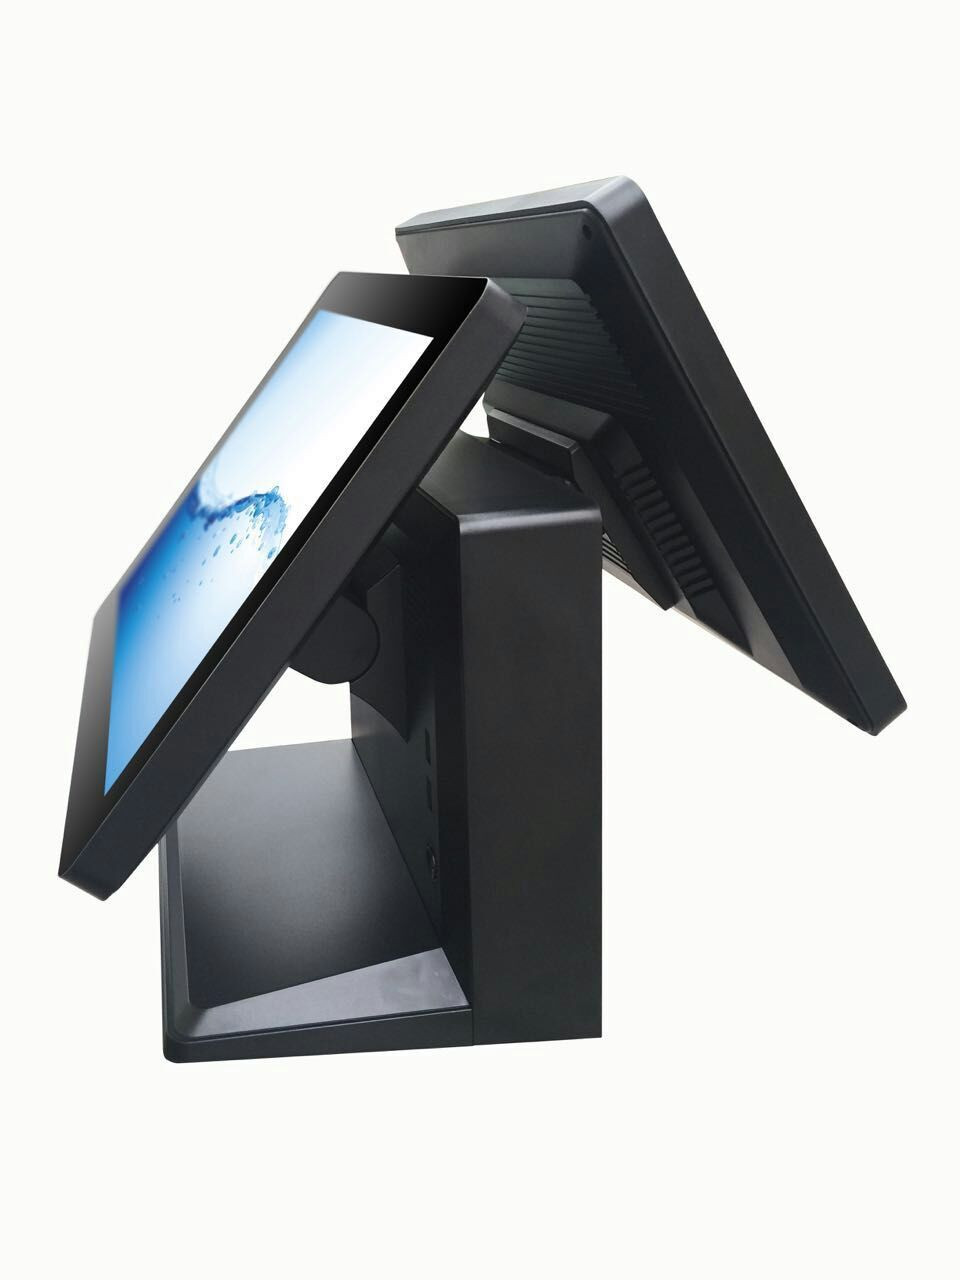 New Arrival 15 Inch Touch Android Pos System With Dual Screen Cash Register 3G